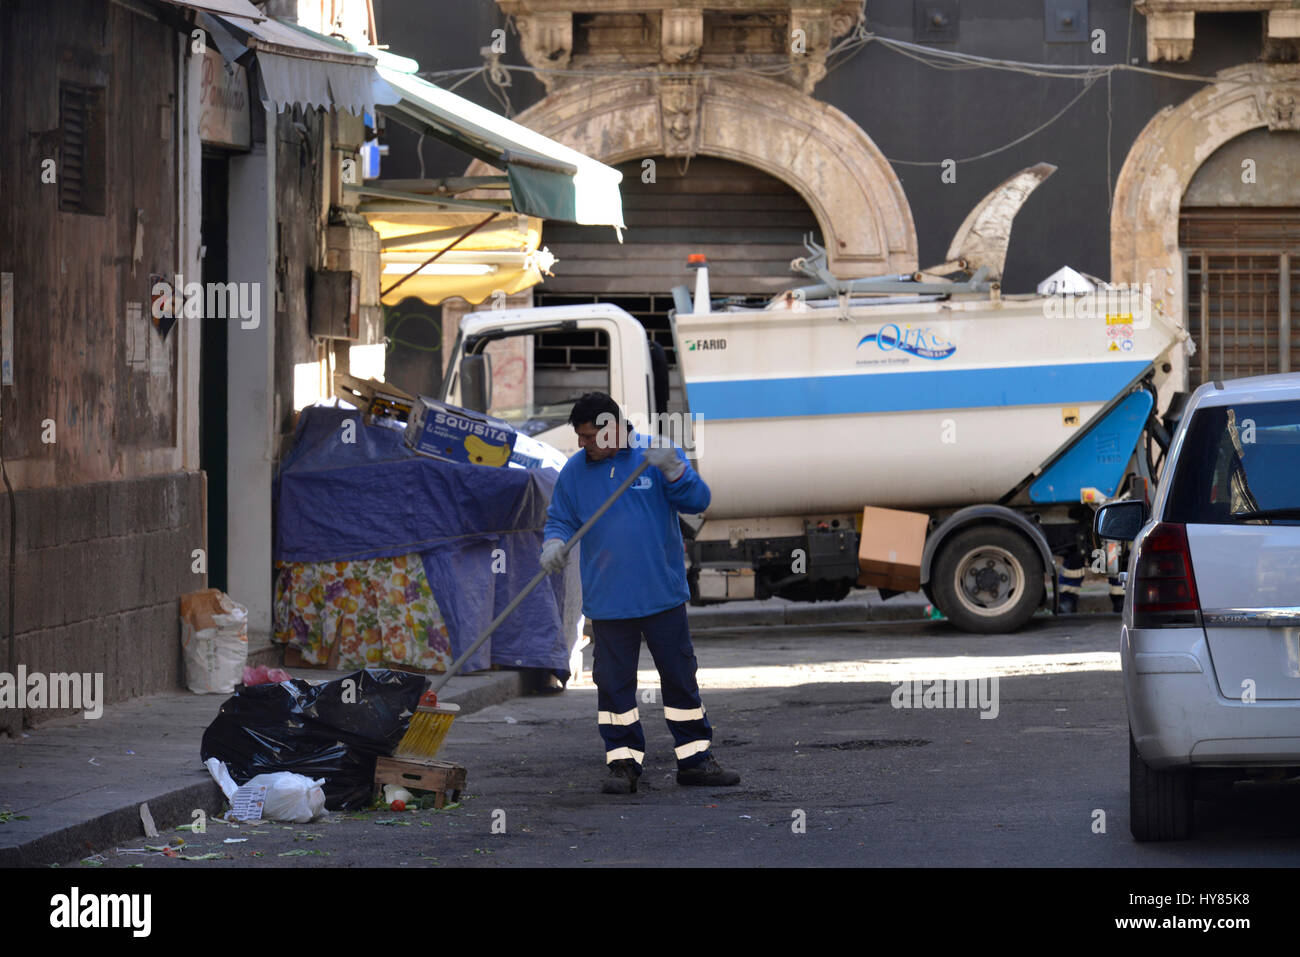 Garbage disposal, Catania, Sicily, Italy, Muellabfuhr, Sizilien, Italien Stock Photo